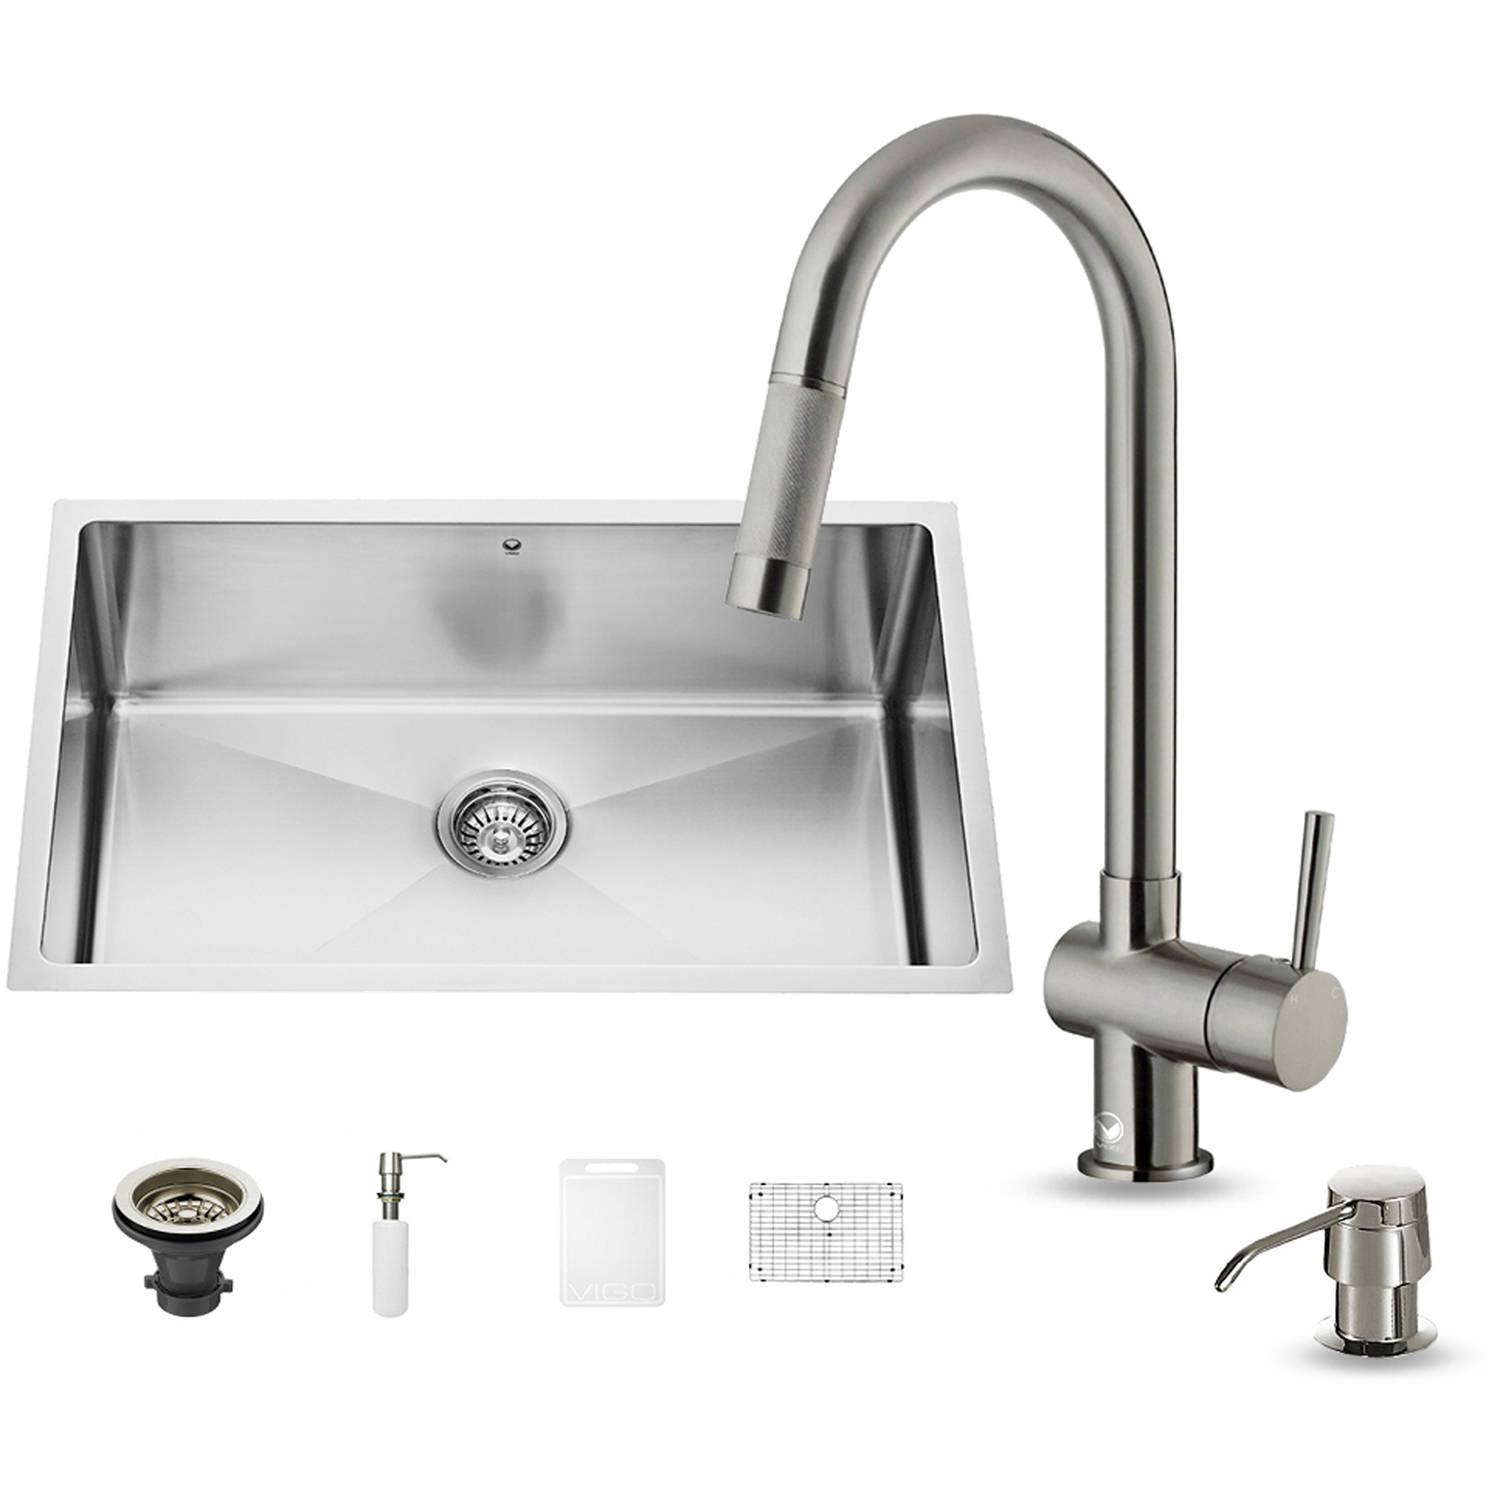 "Vigo All-in-One 30"" Undermount Stainless Steel Kitchen Sink and Faucet Set"